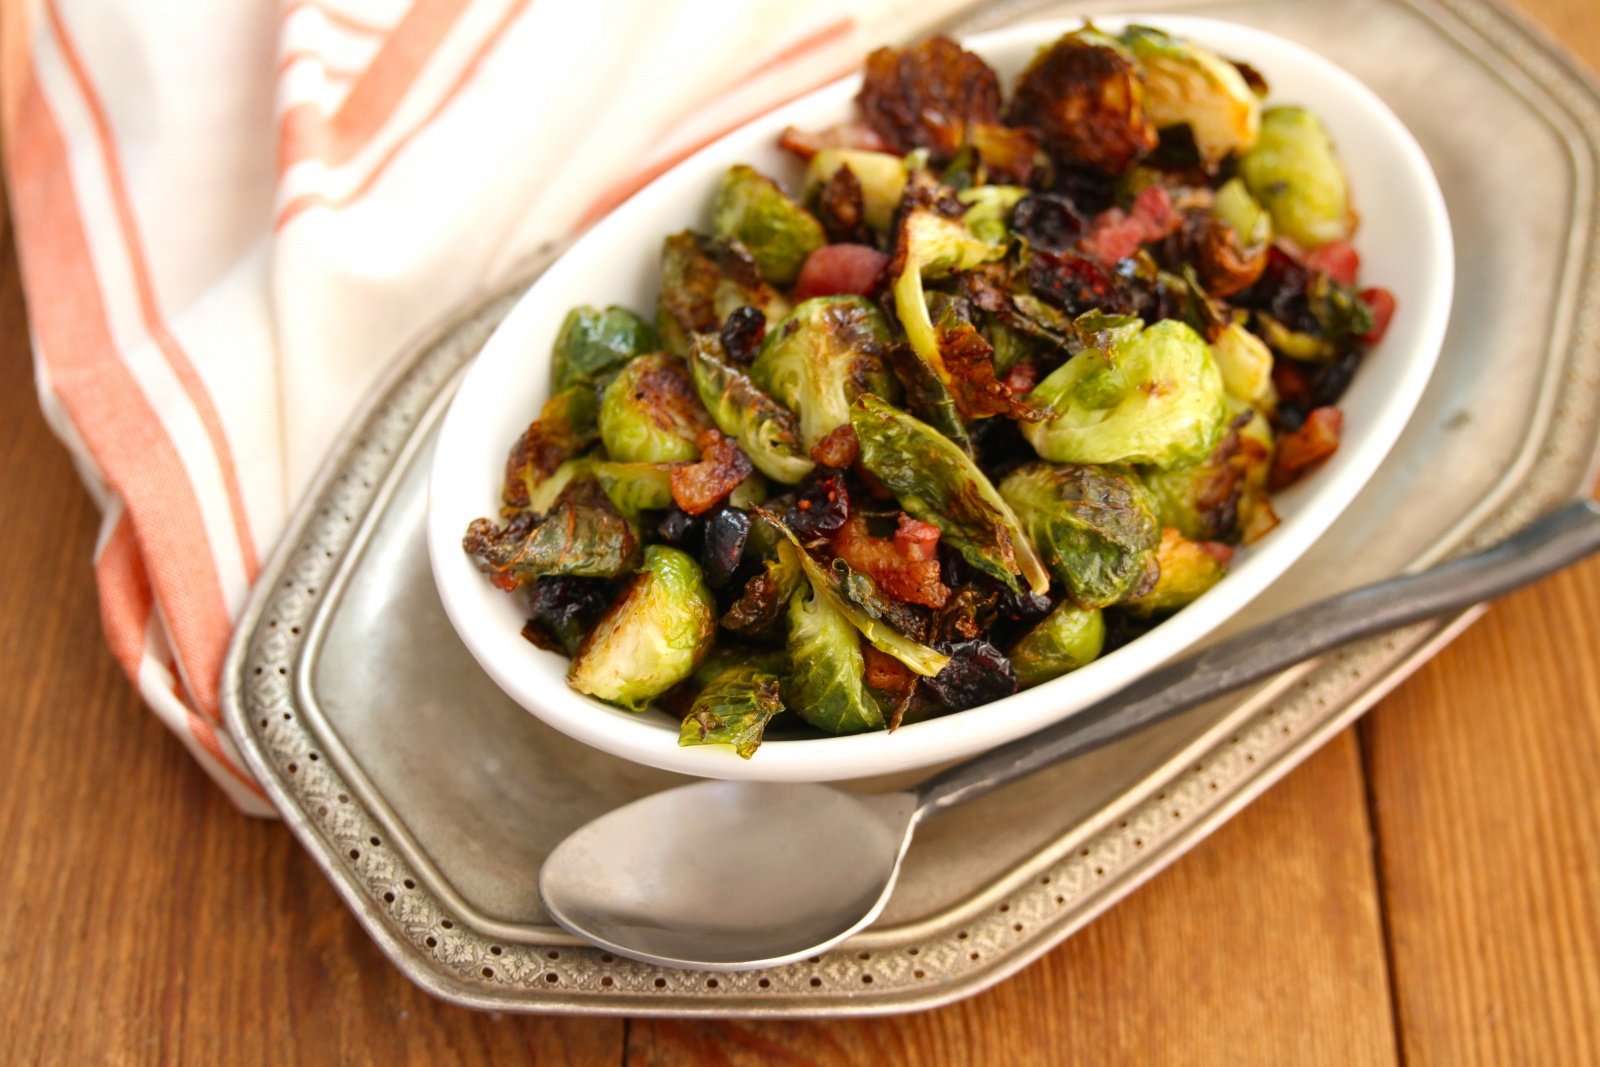 Roasted Brussels with Pancetta and Cranberries – 6 total ingredients